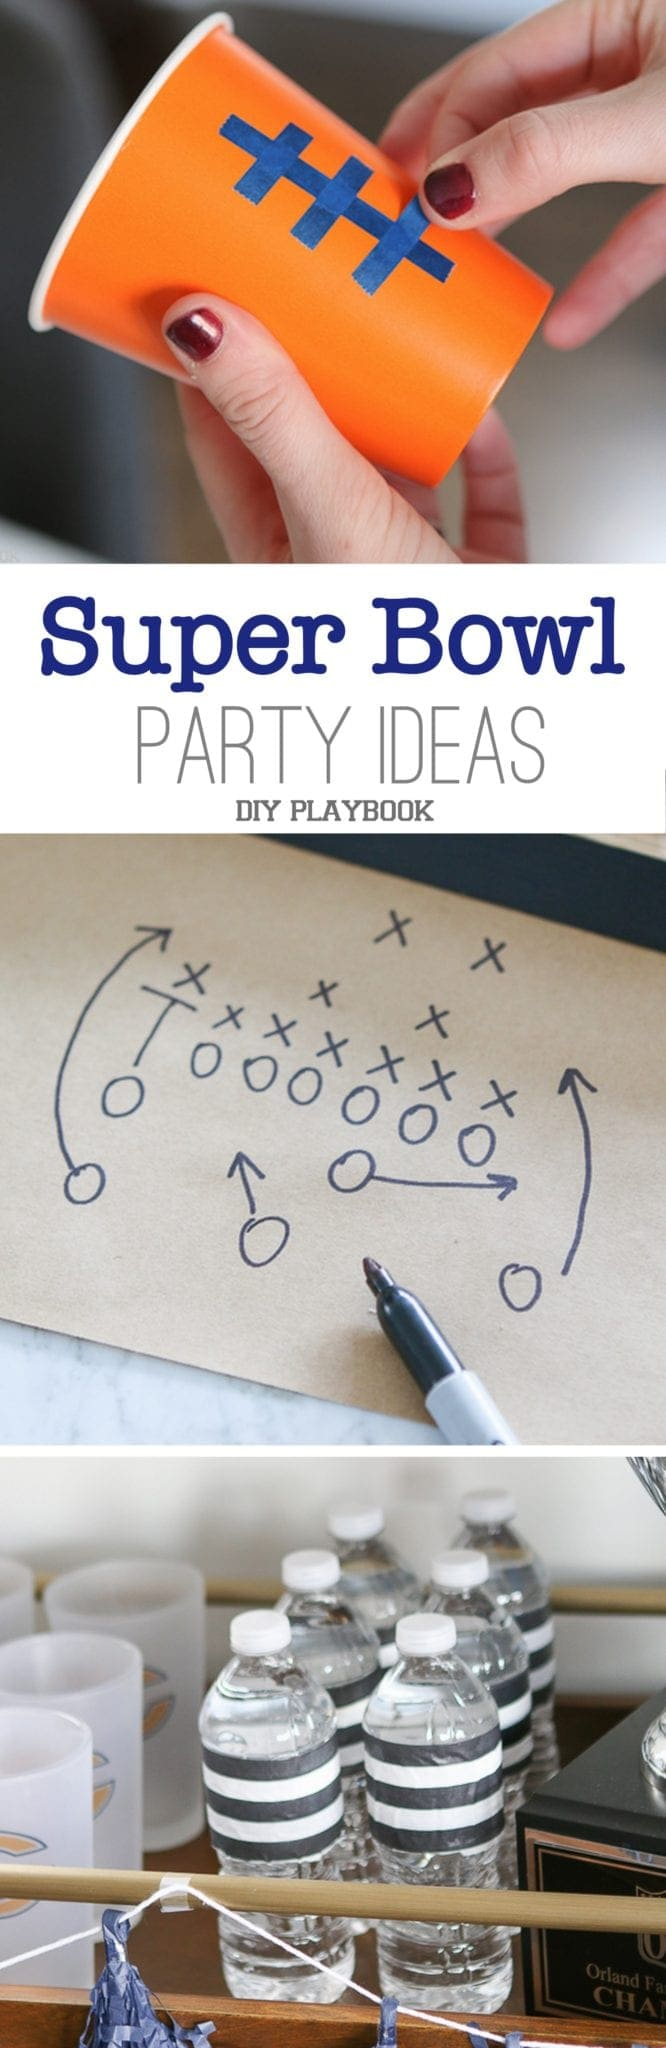 Super Bowl ideas to make your football party an amazing one!